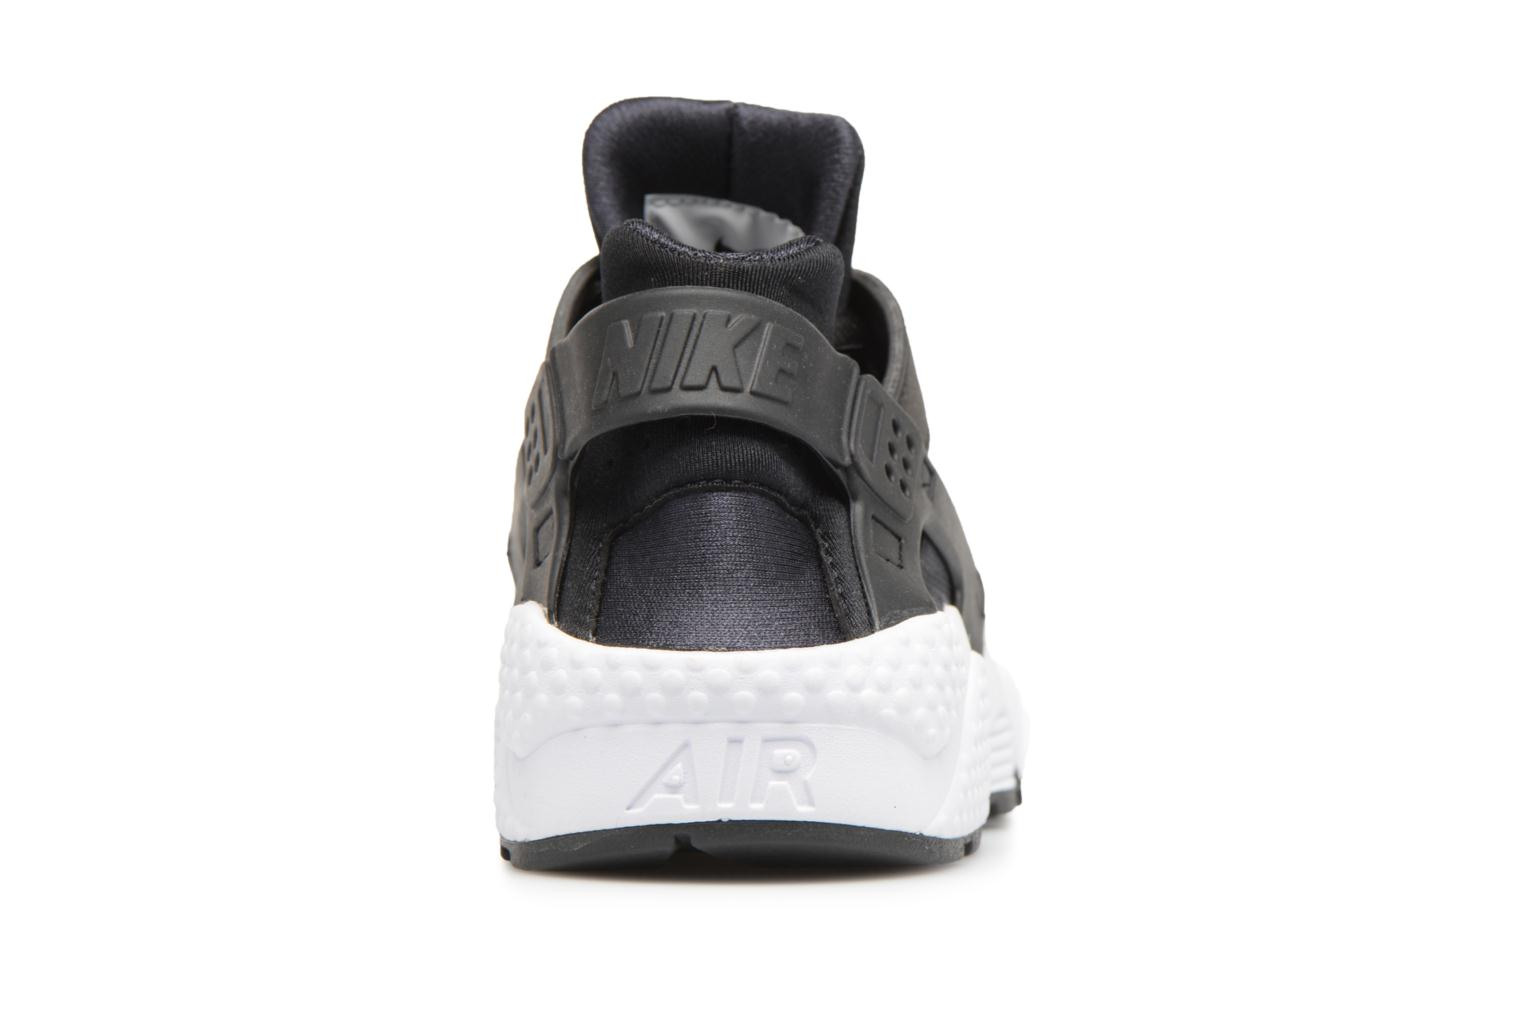 Black Nike Wmns white Run black Air Huarache pwq4Ir6xdp